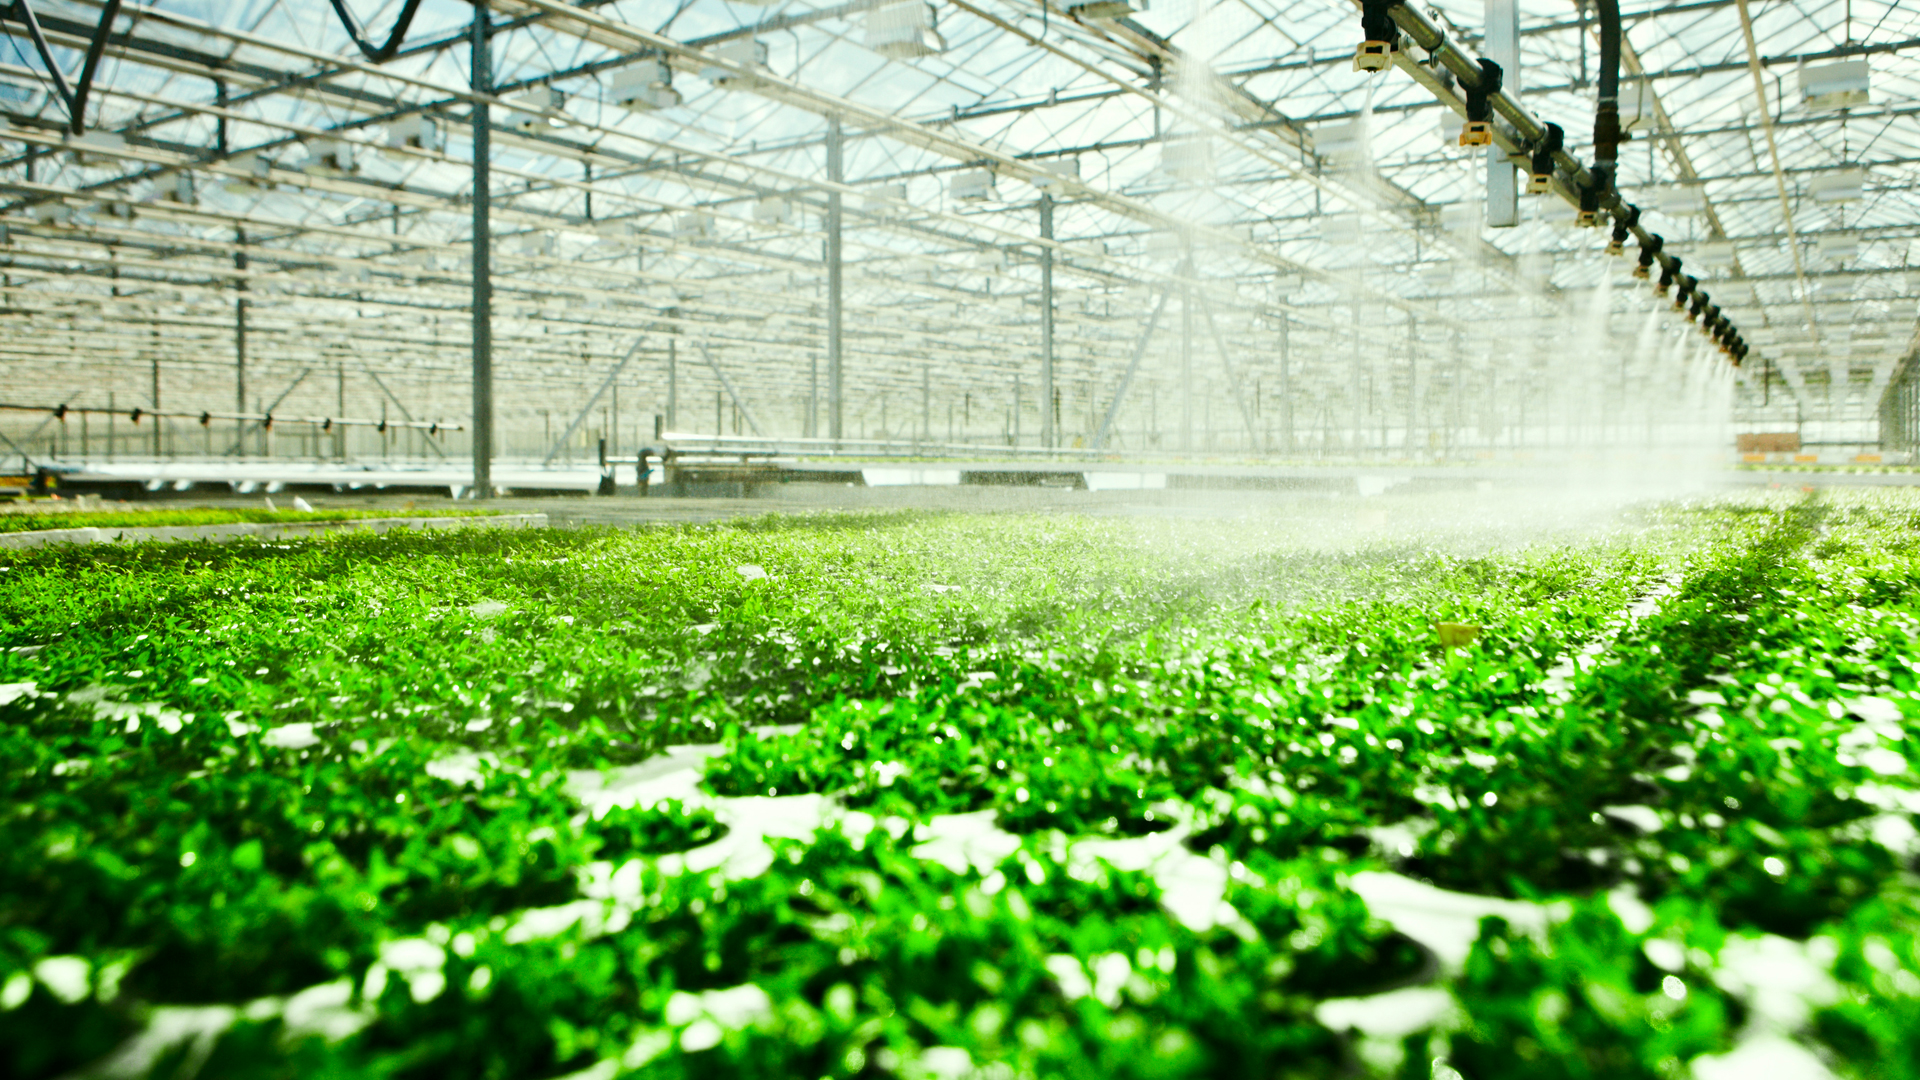 3032307-poster-p-1-the-internet-of-things-meets-hydroponics-how-to-grow-a-better-vegetable